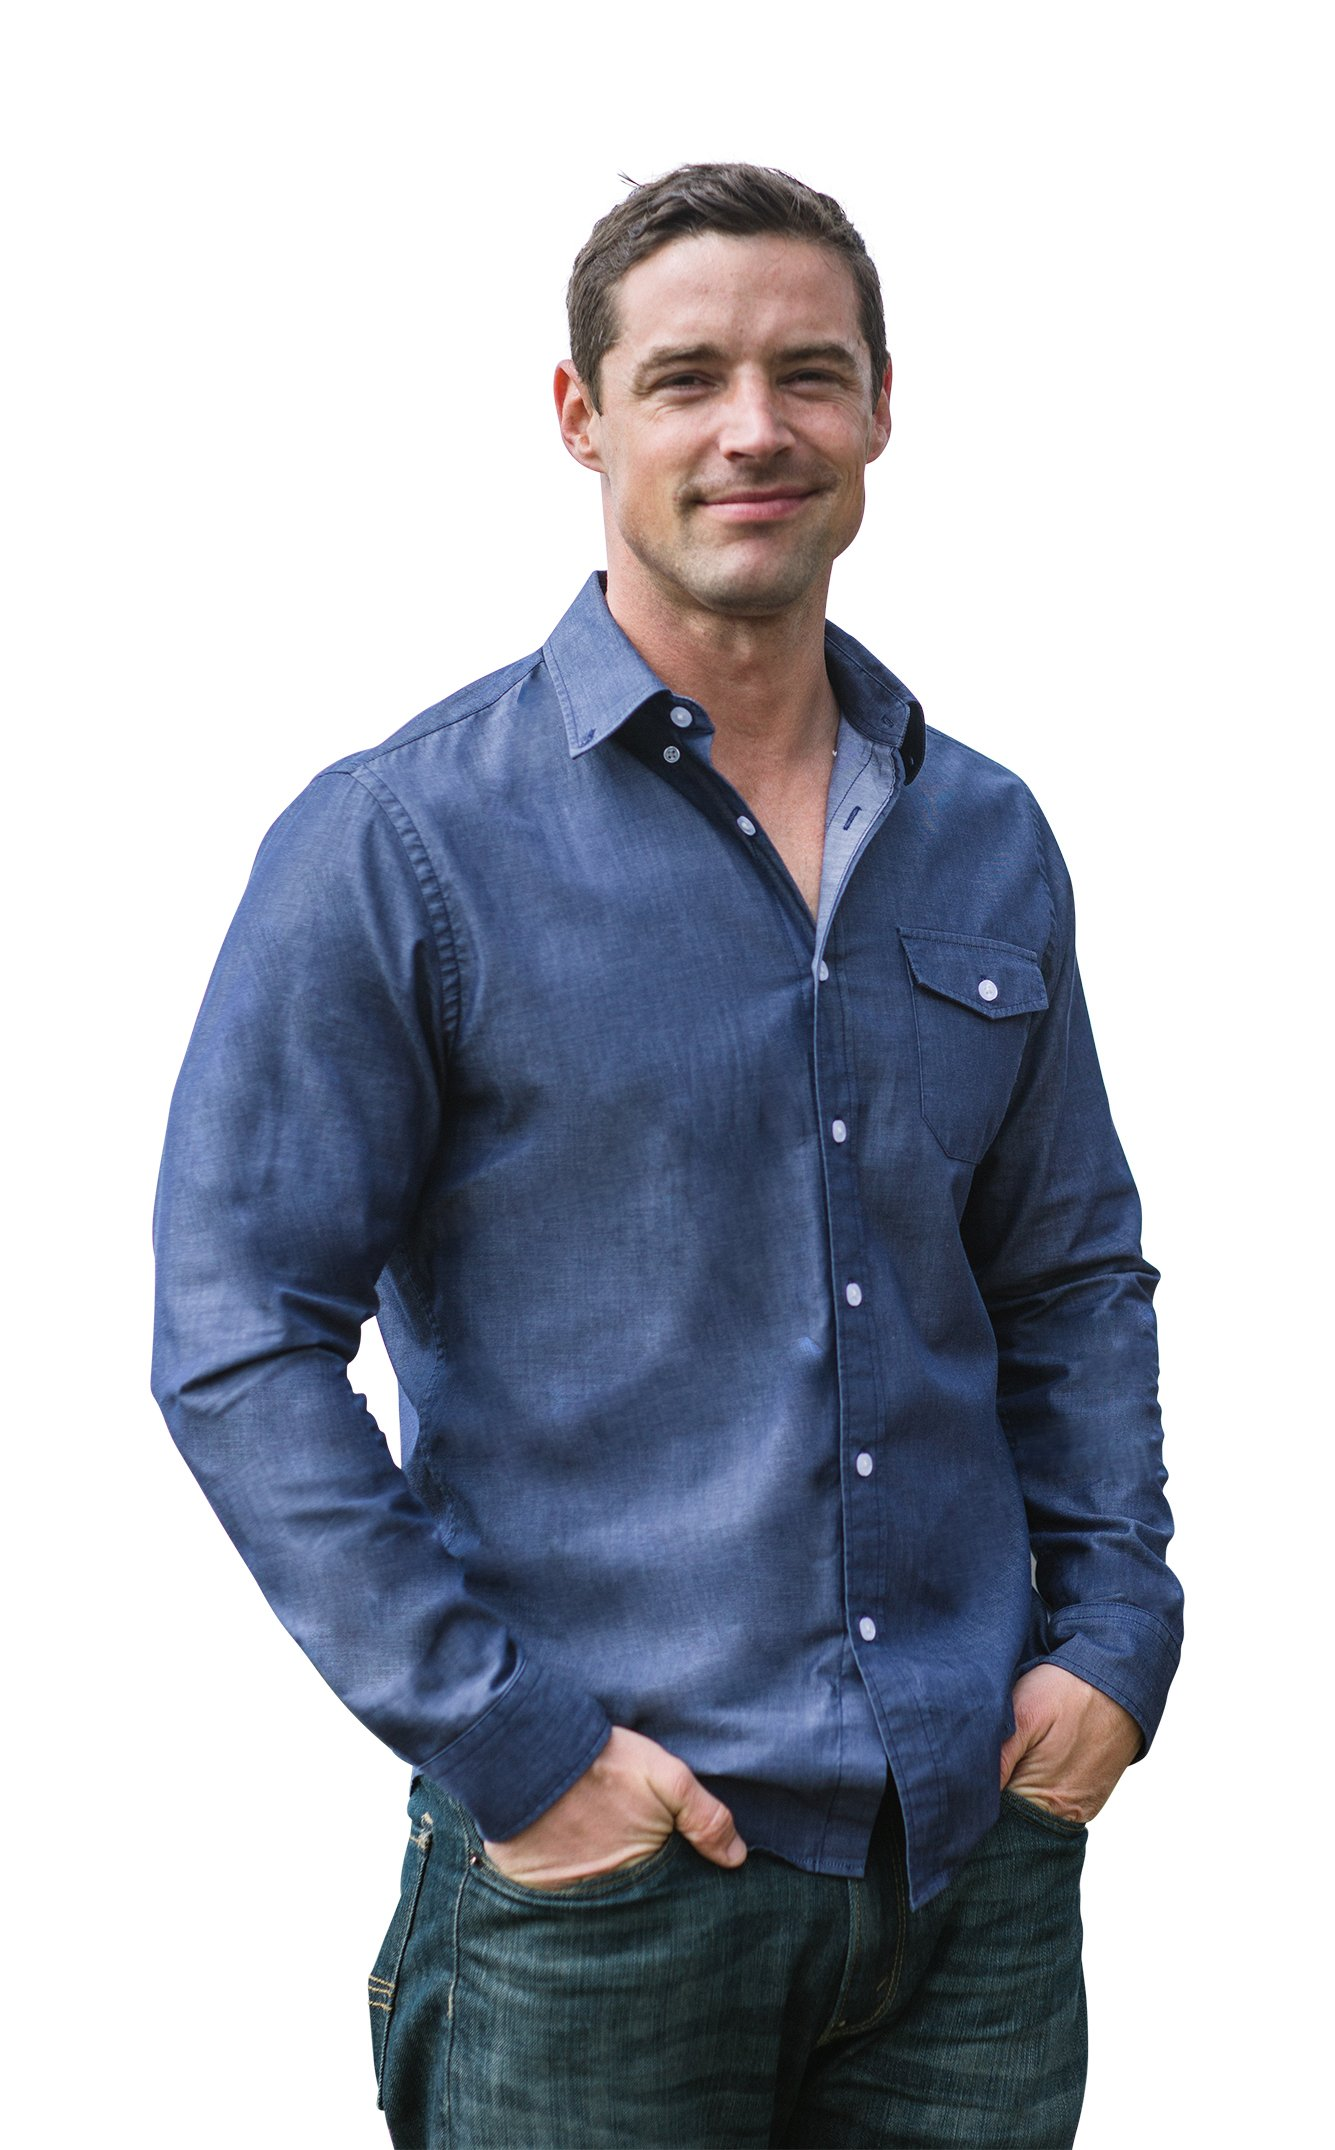 The Best Shirt Ever - Stainproof, Waterproof, Sweat-wicking Men's Button Down (XL, Chambray) by Clickbait Clothing